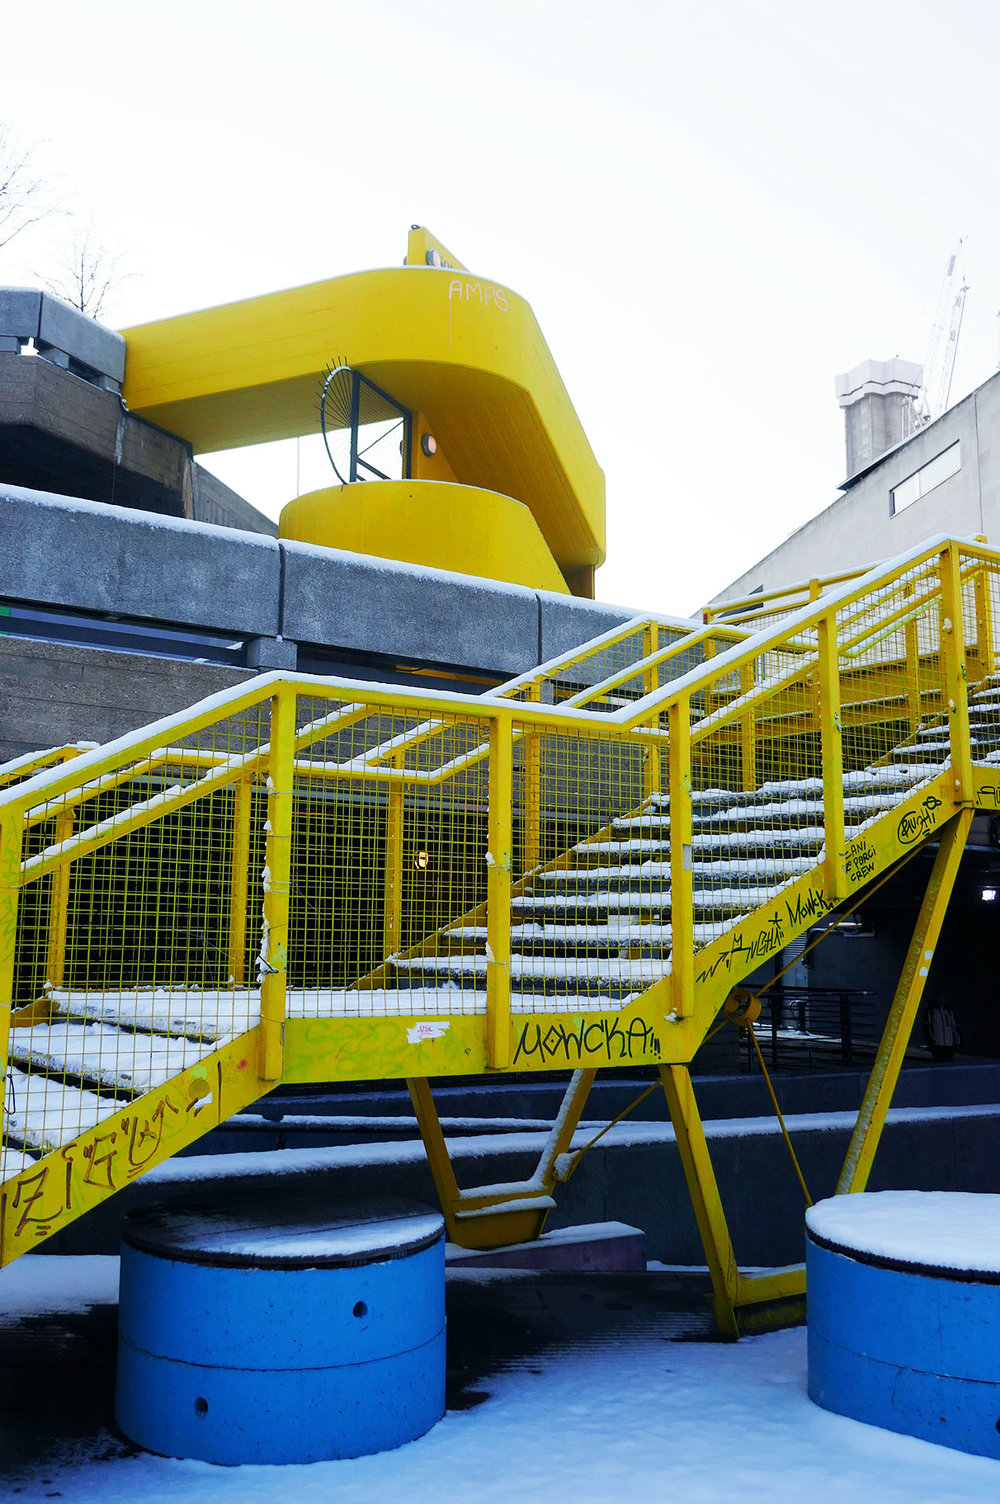 Hooray_snow_stairs_yellow.jpg